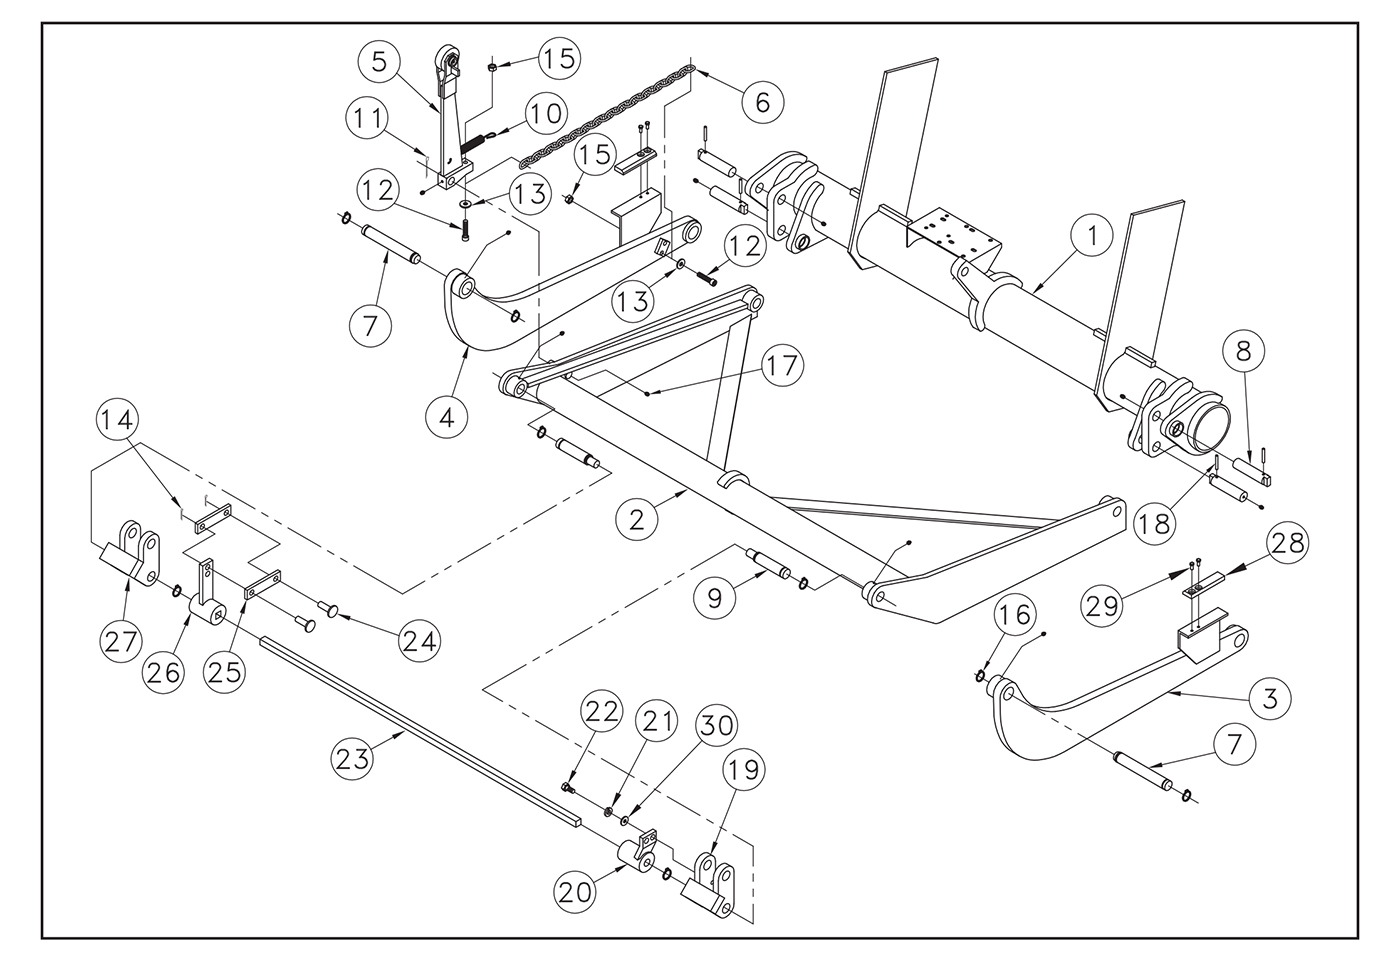 iteparts intercon truck equipment online store Boss Plow Diagram st22 trunnion lift arms and idler arms diagram